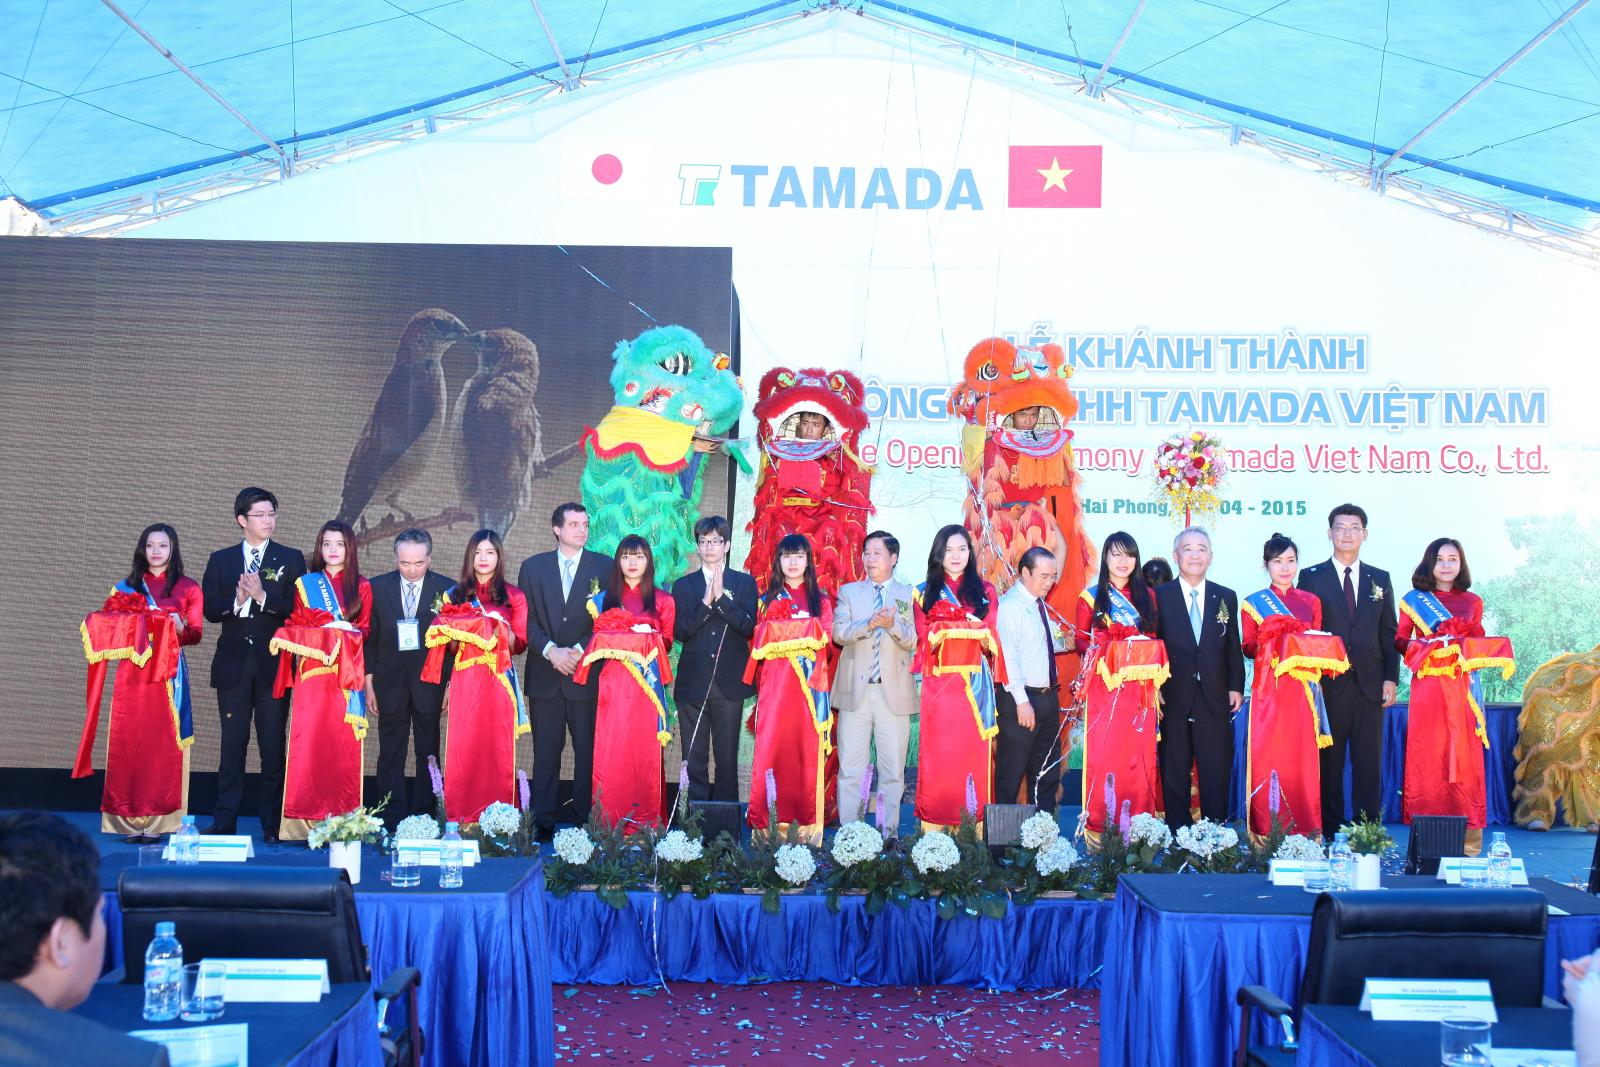 The Opening Ceremony of Tamada Vietnam Co., Ltd.